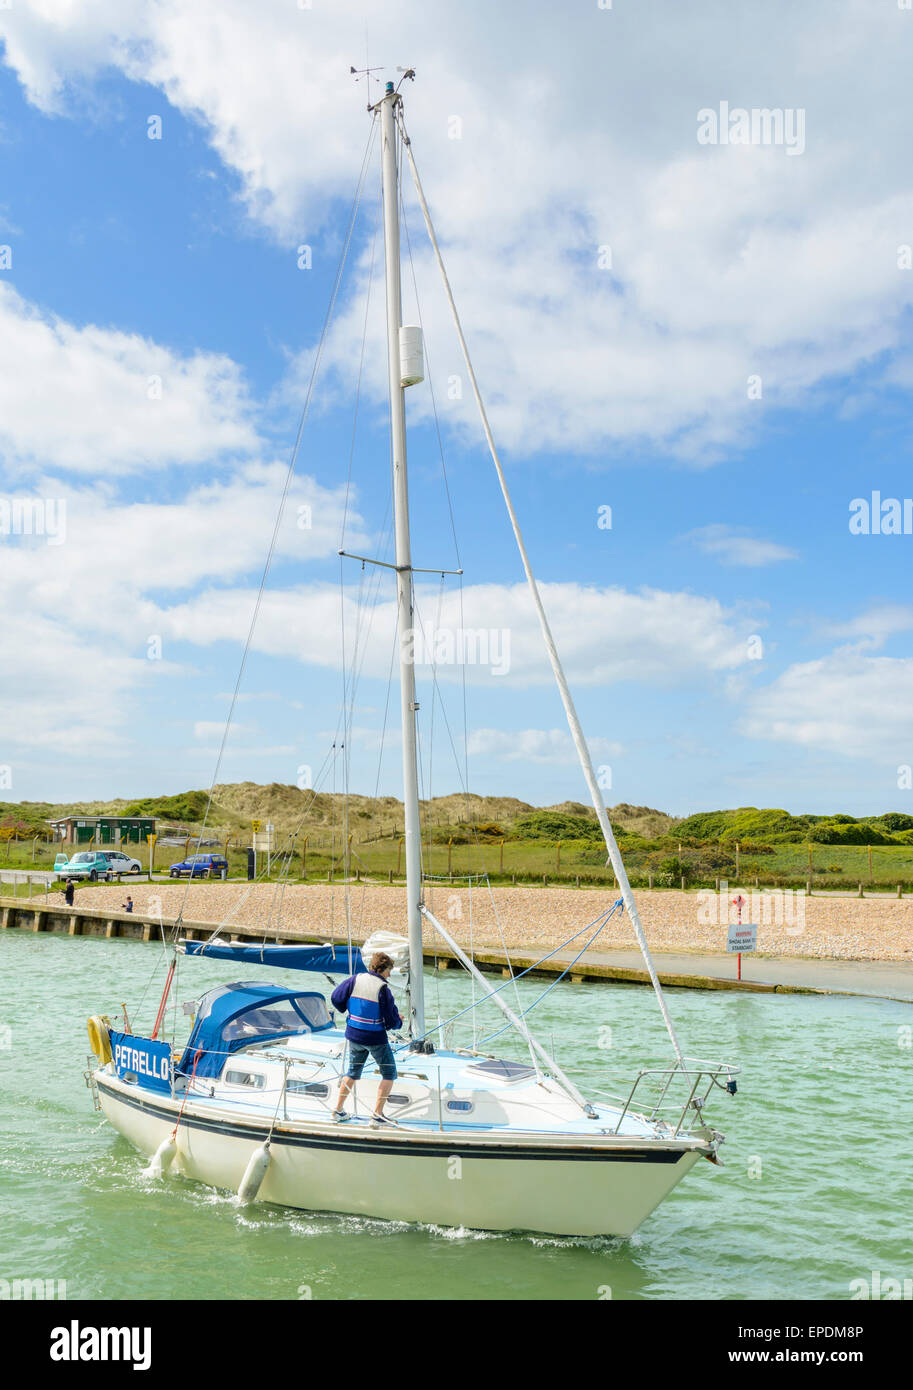 Small yacht on the river without a sail up. - Stock Image